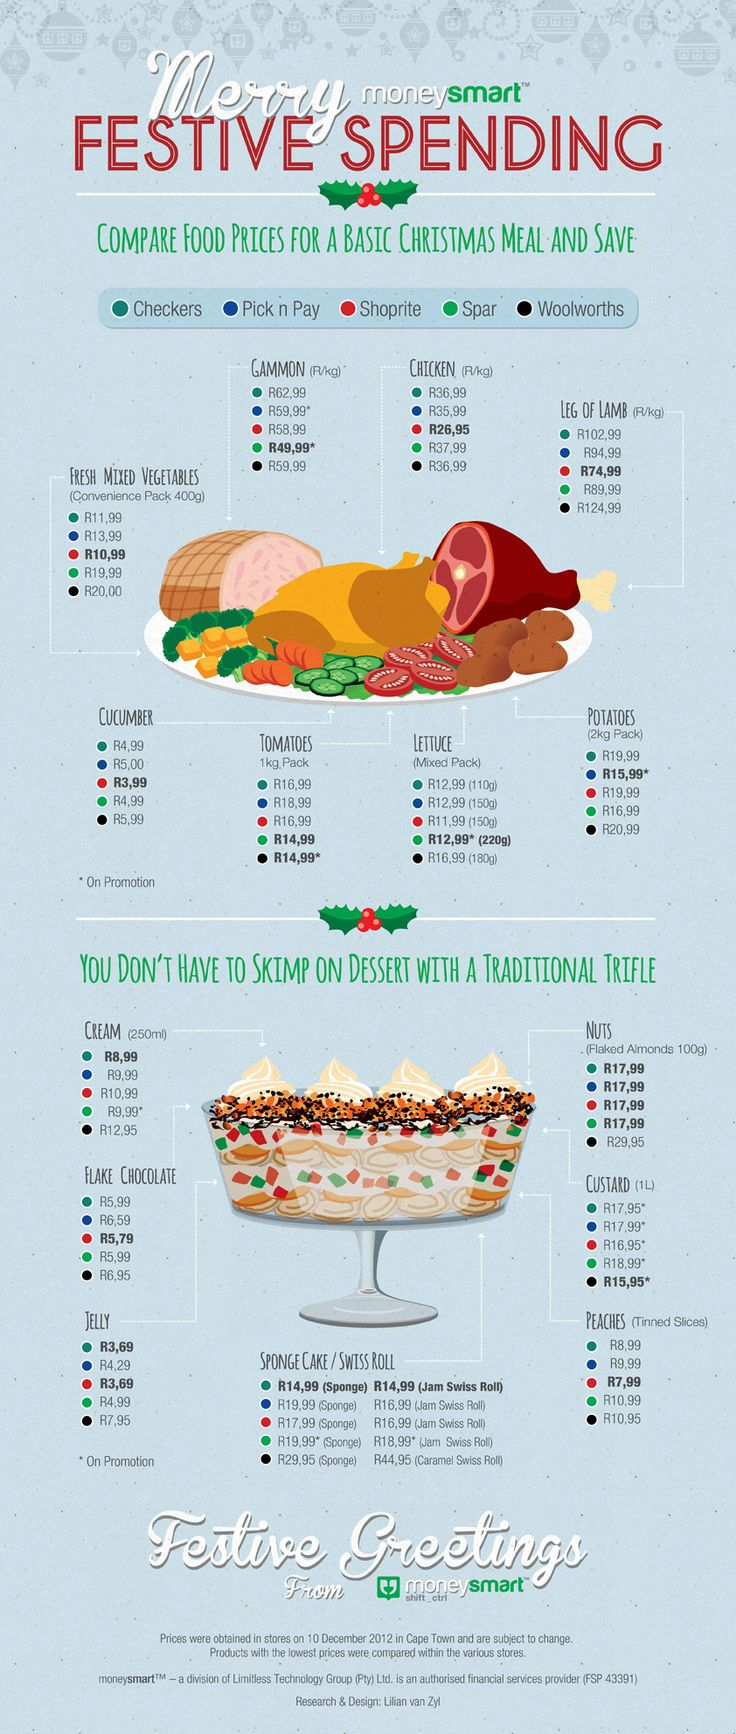 Easy Recipes for Affordable Christmas Meals: Infographic. Compare food prices from the 5 major South African grocery stores.